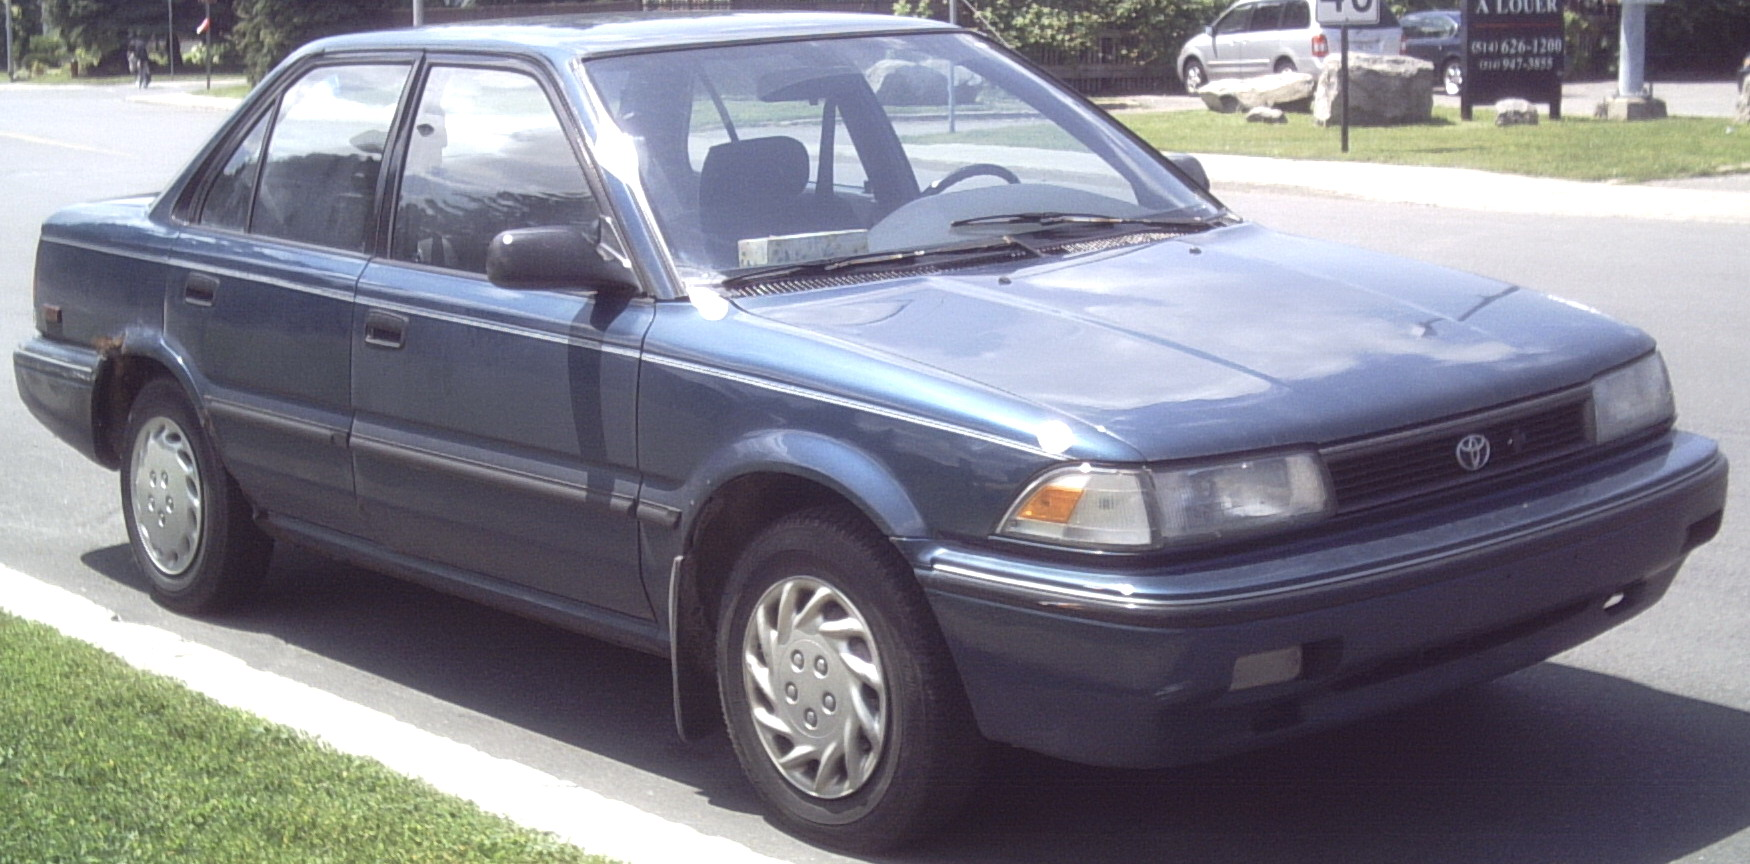 FileCorolla 1991 92